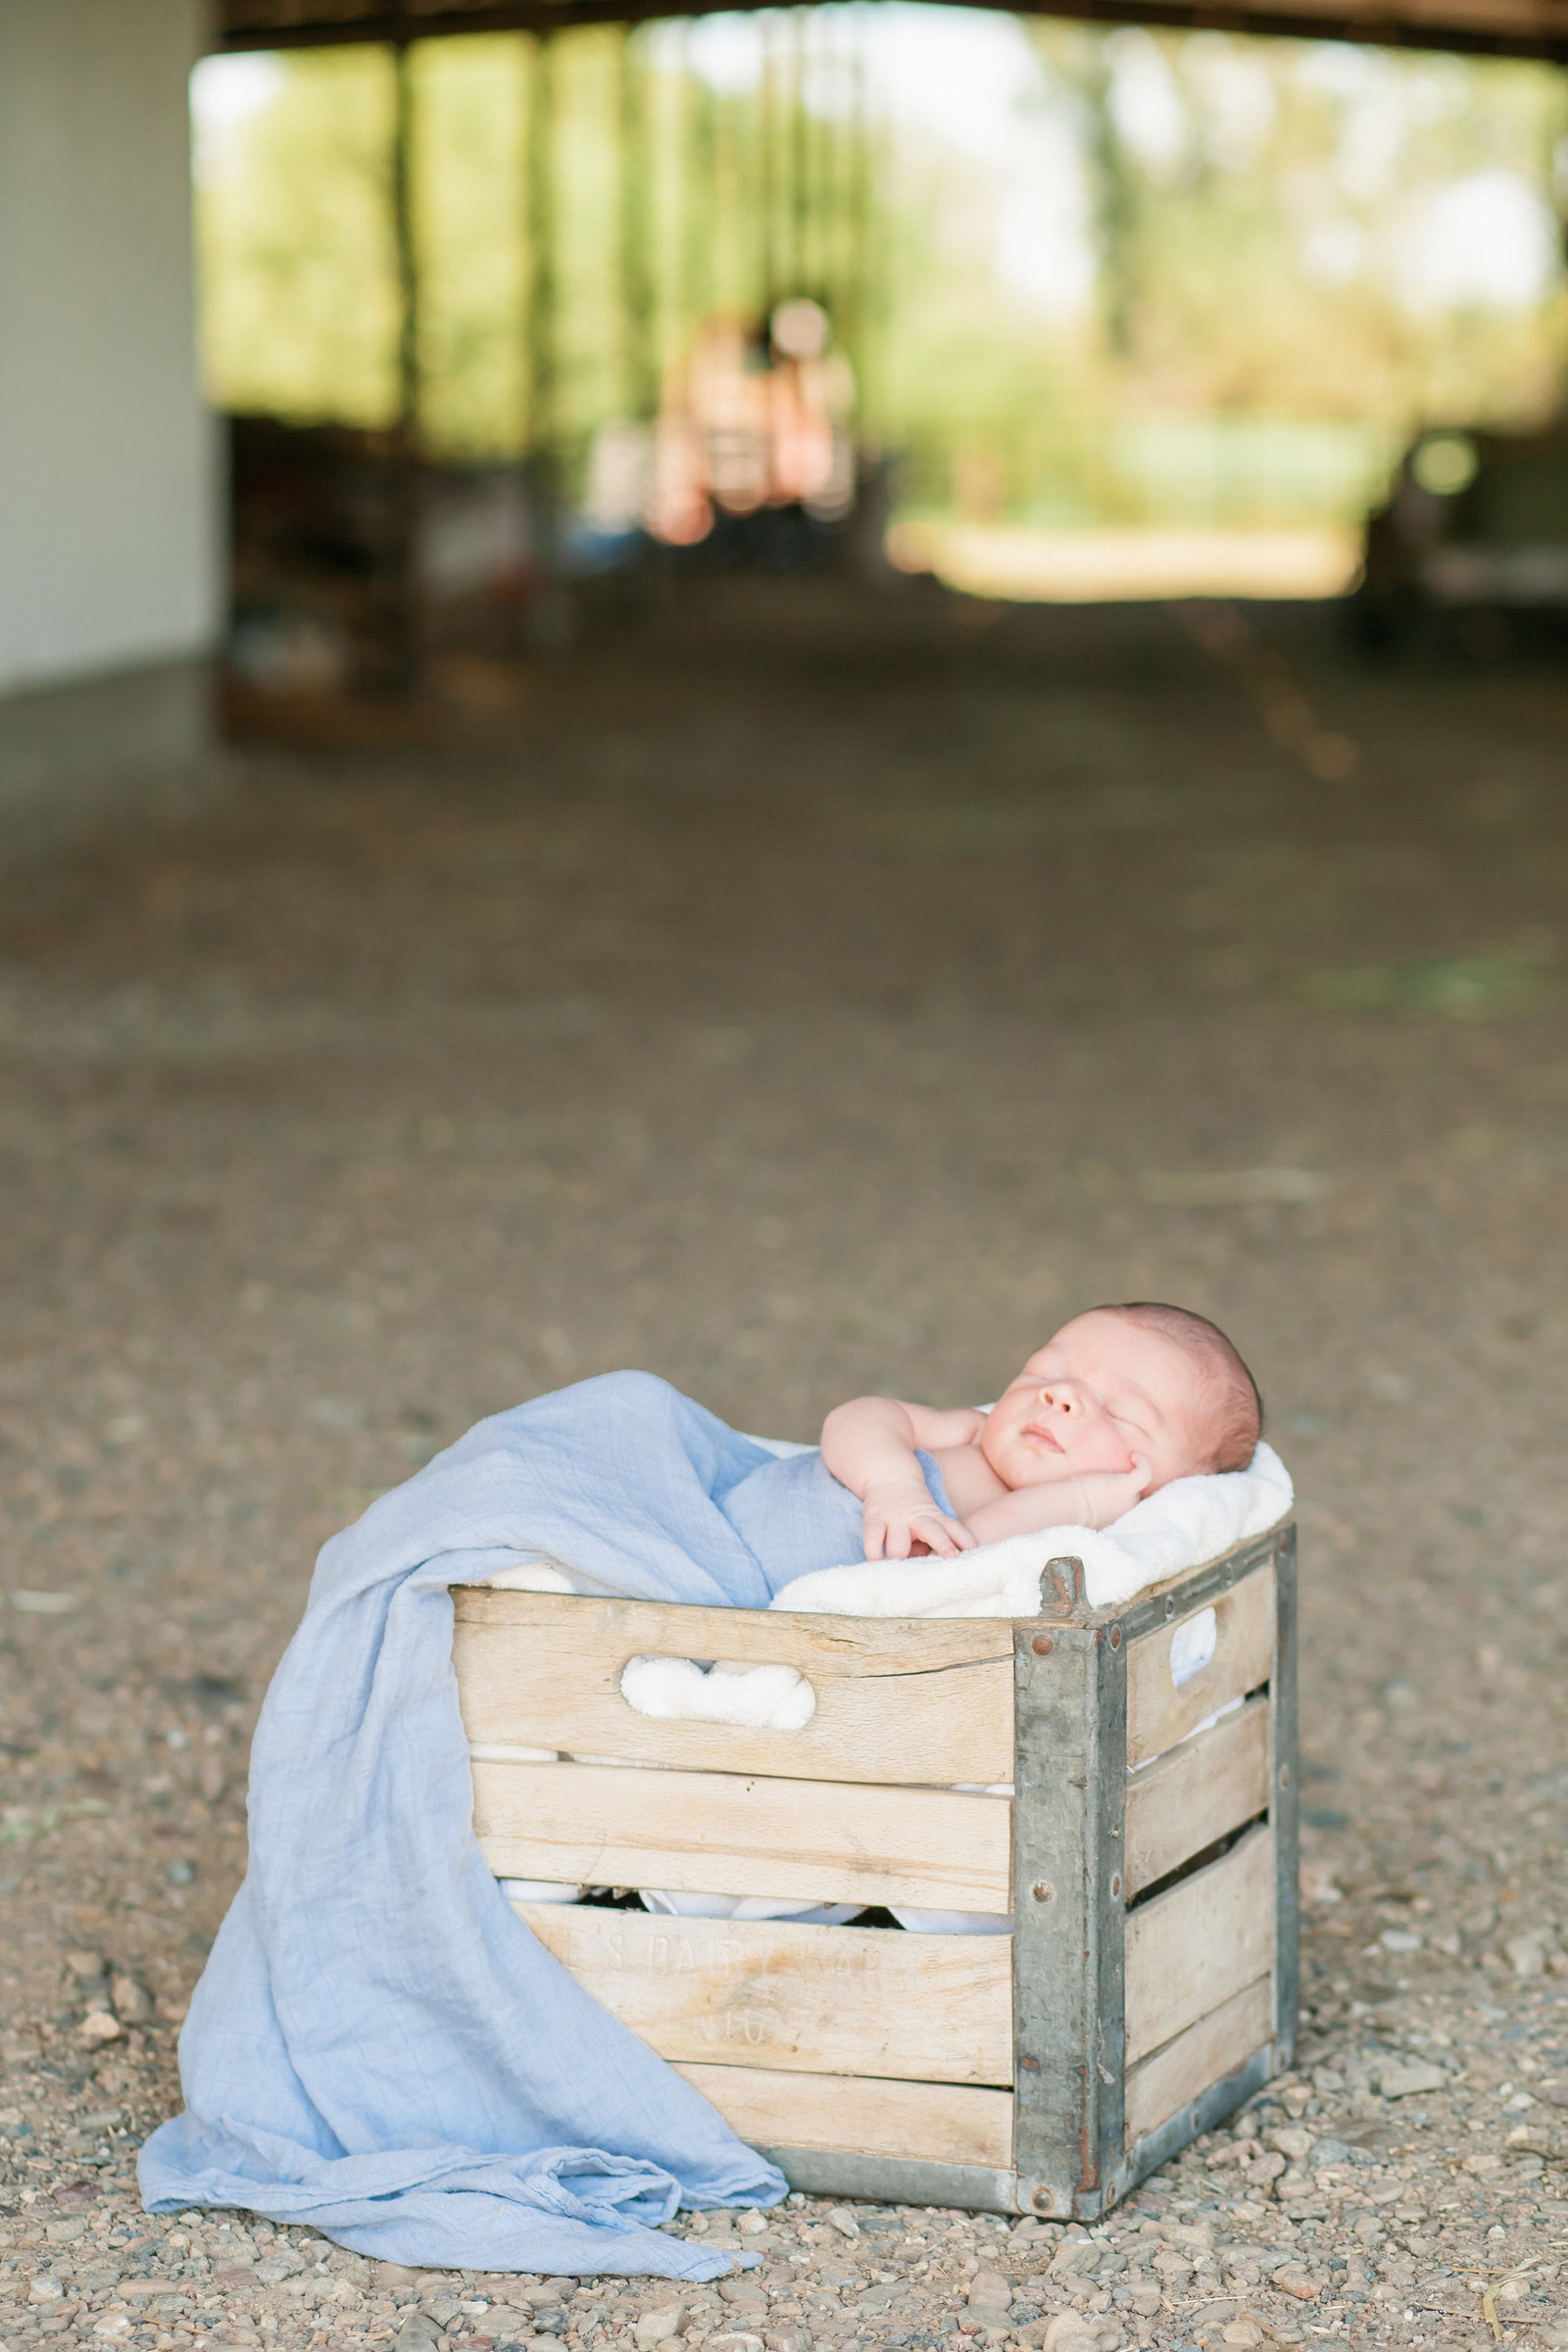 Cottonwood CA Newborn session baby in milk crate in barn